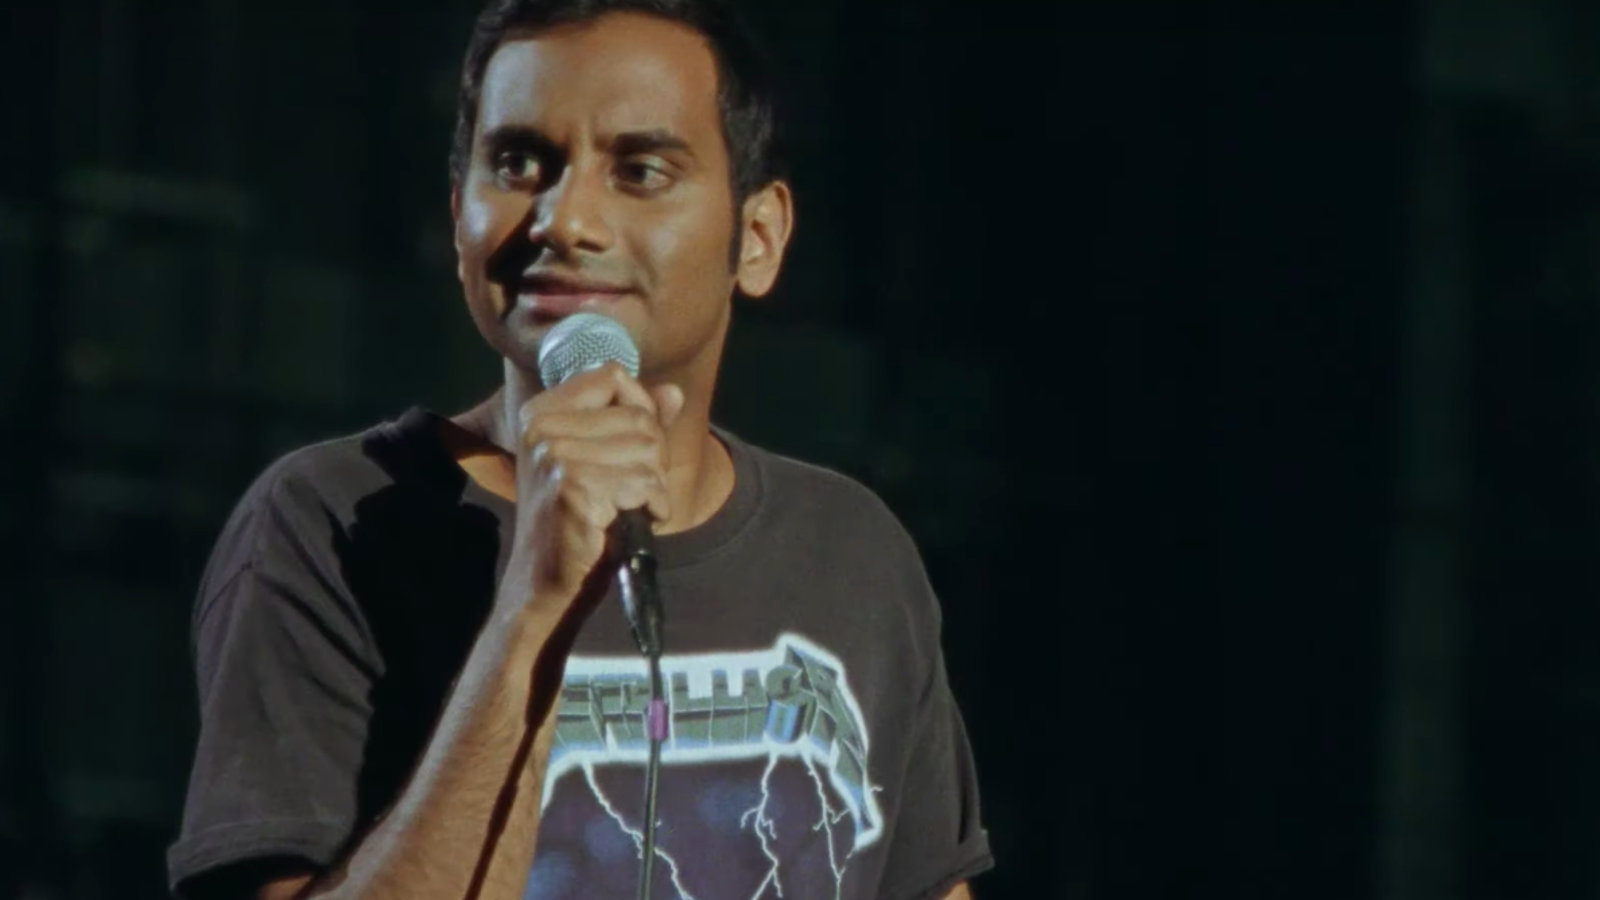 Aziz Ansari discusses Crazy Rich Asians and Simpsons Apu controversy in new Netflix standup special